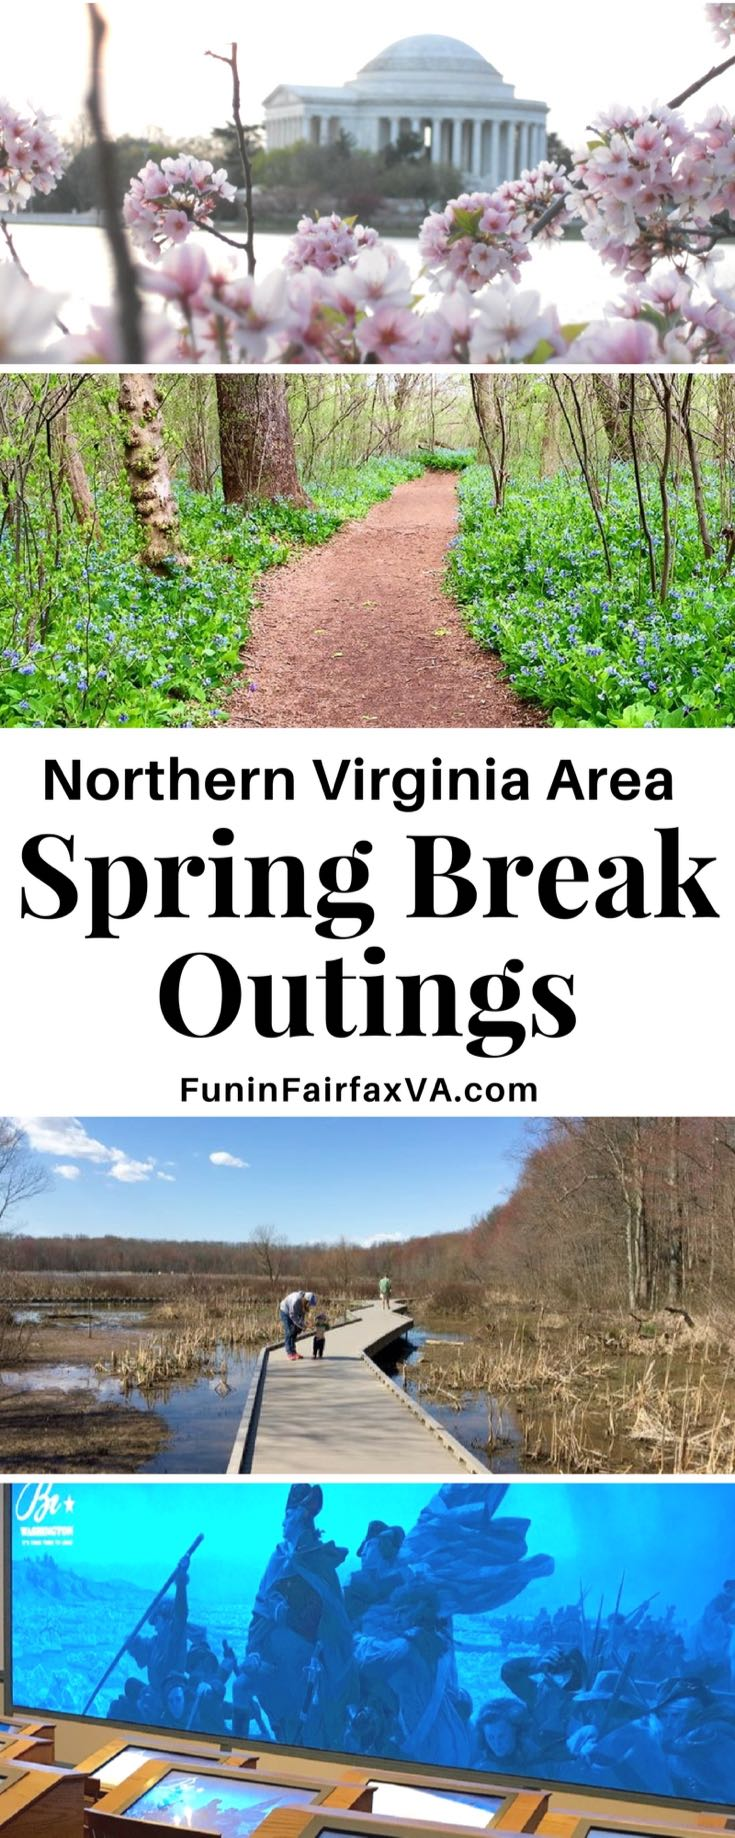 Virginia Washington DC travel. Here are five ideas for fun spring break outings that don't require reservations, tickets, or a lot of pre-planning, perfect for spring break or a no school day in the Northern Virginia area.